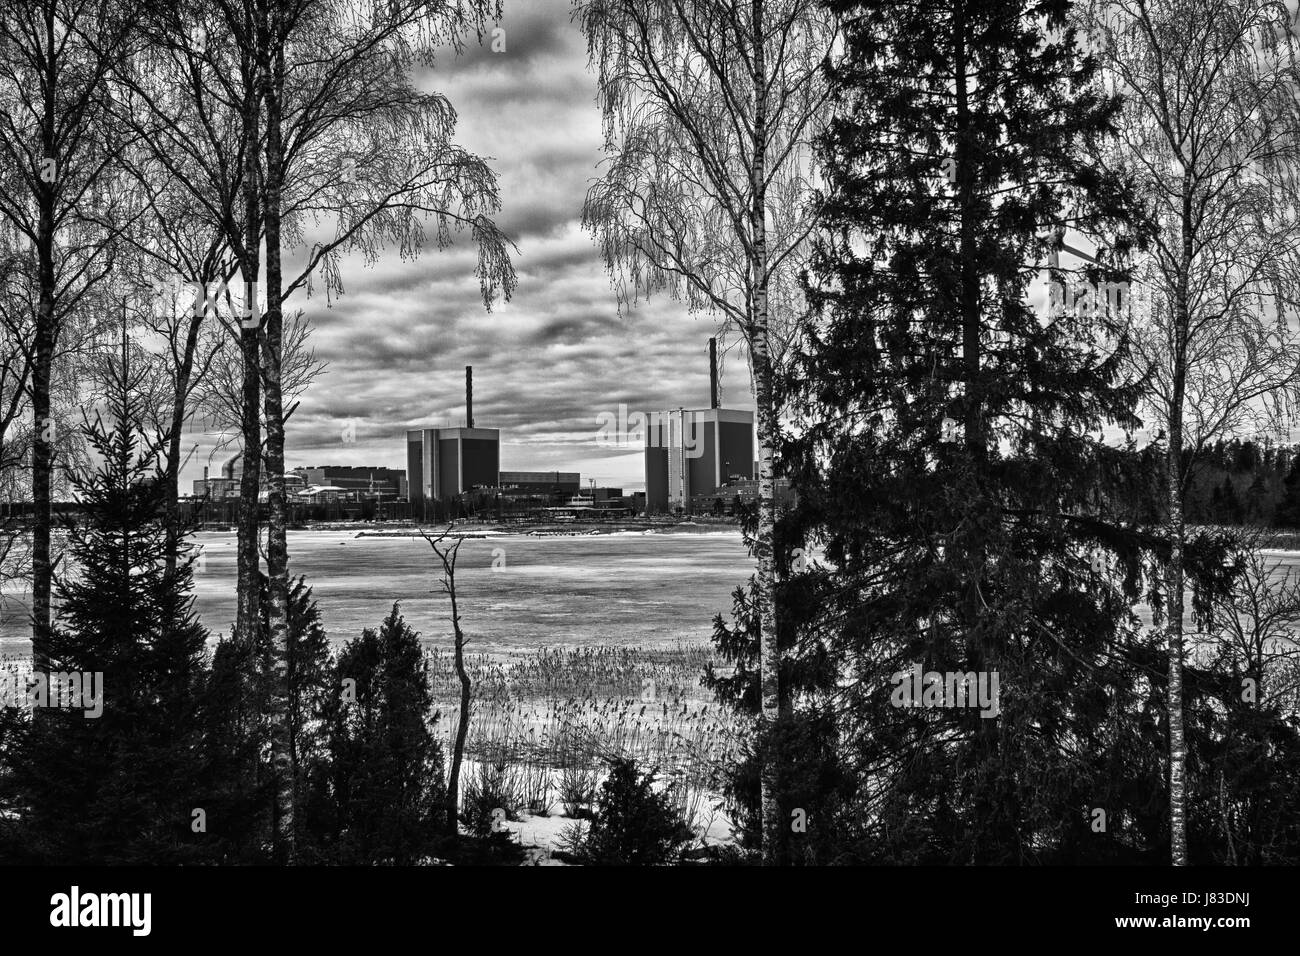 The nuclear power plant Olkiluoto in western Finland - Stock Image